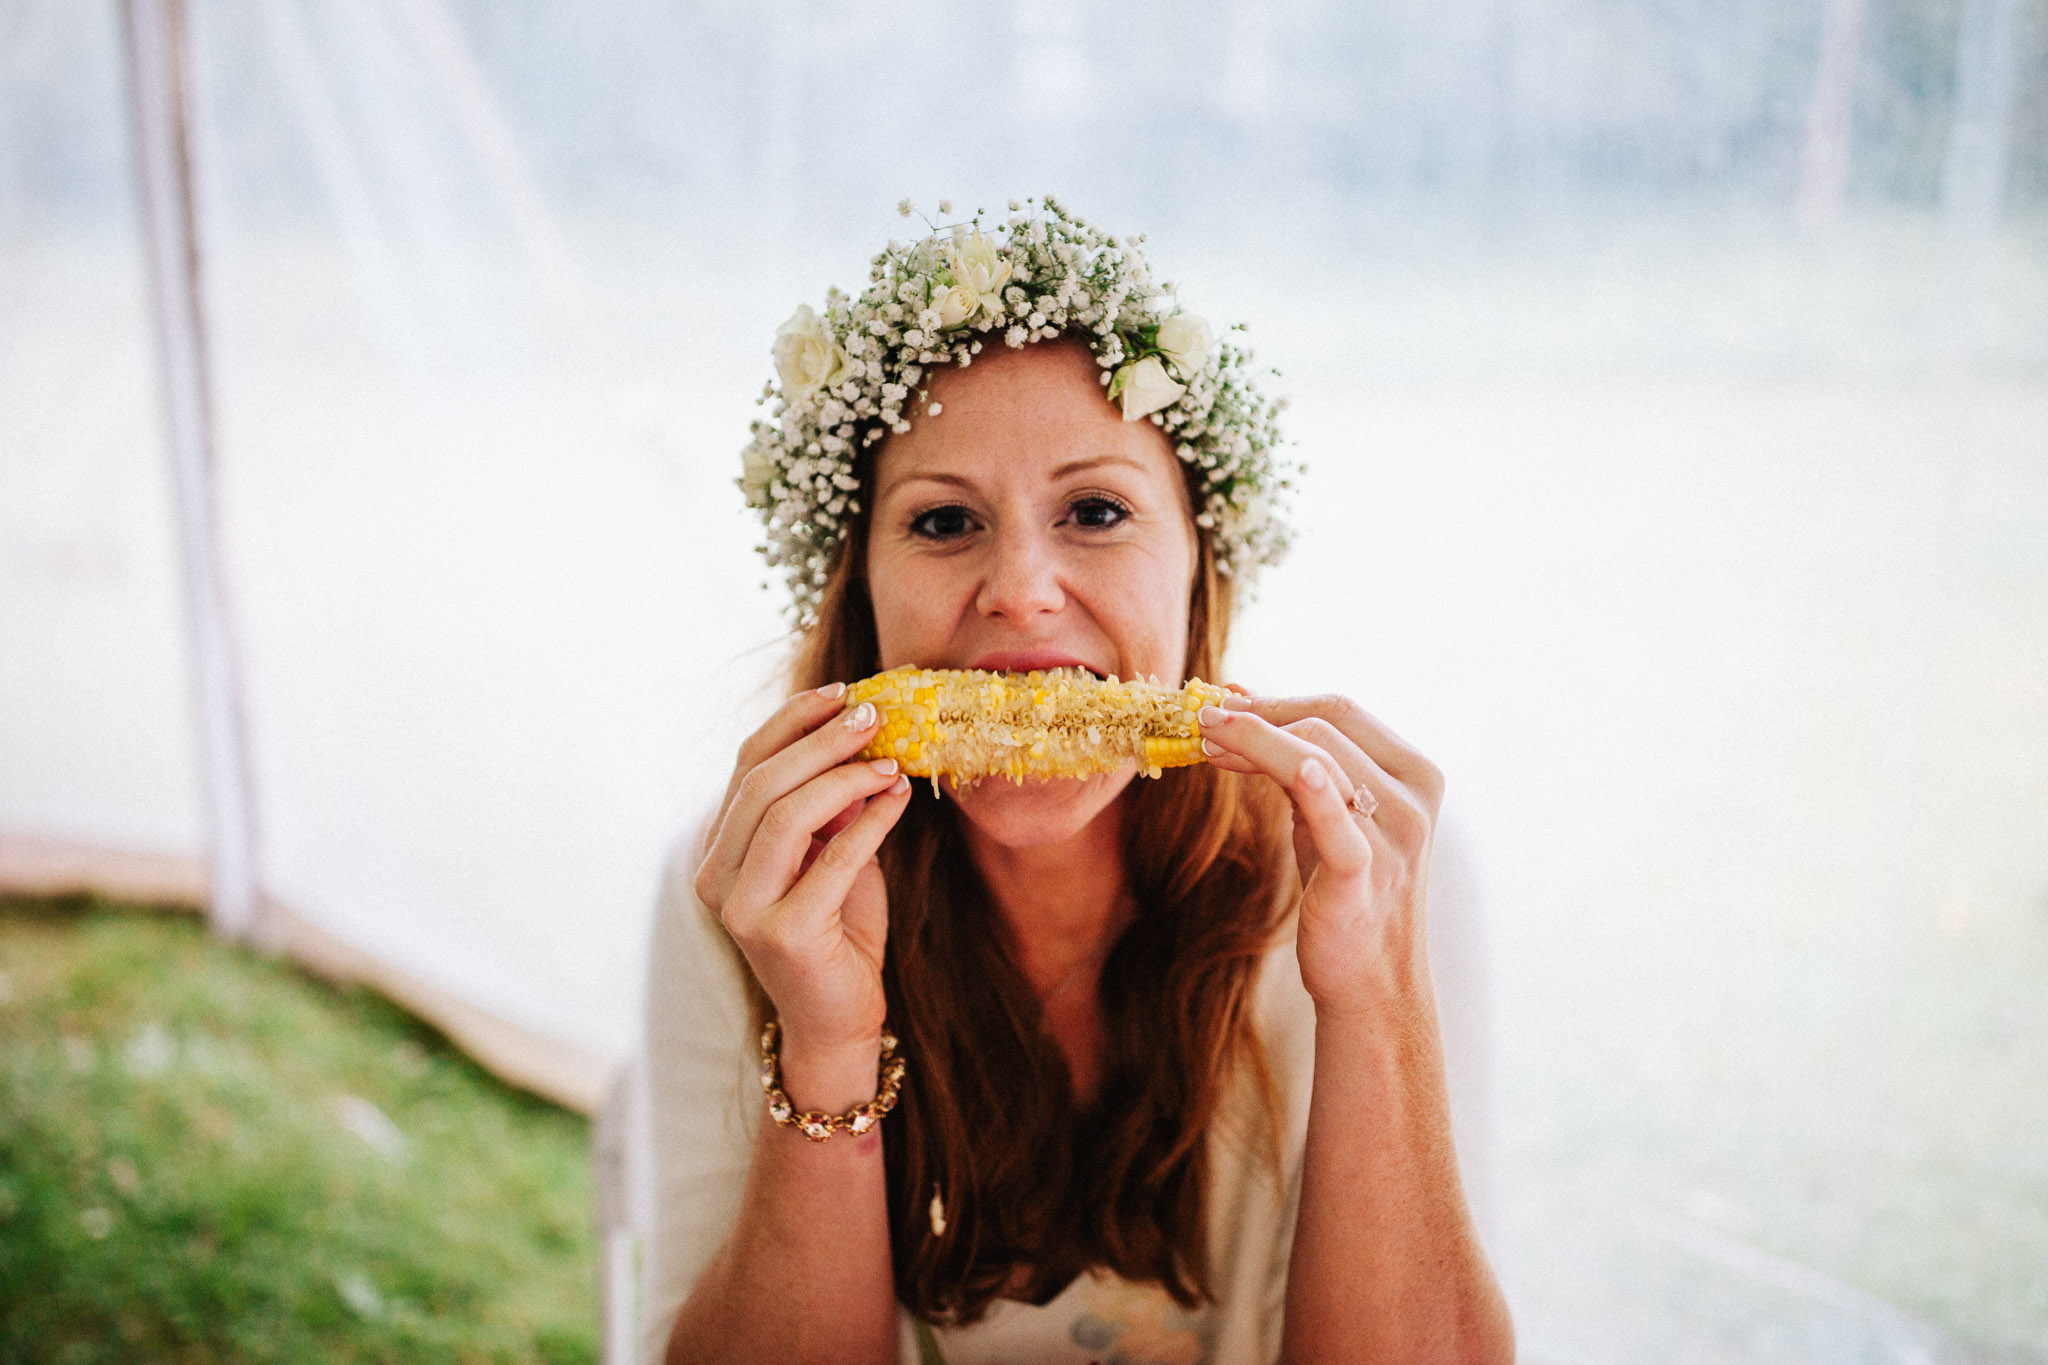 corn on the cob at weddings